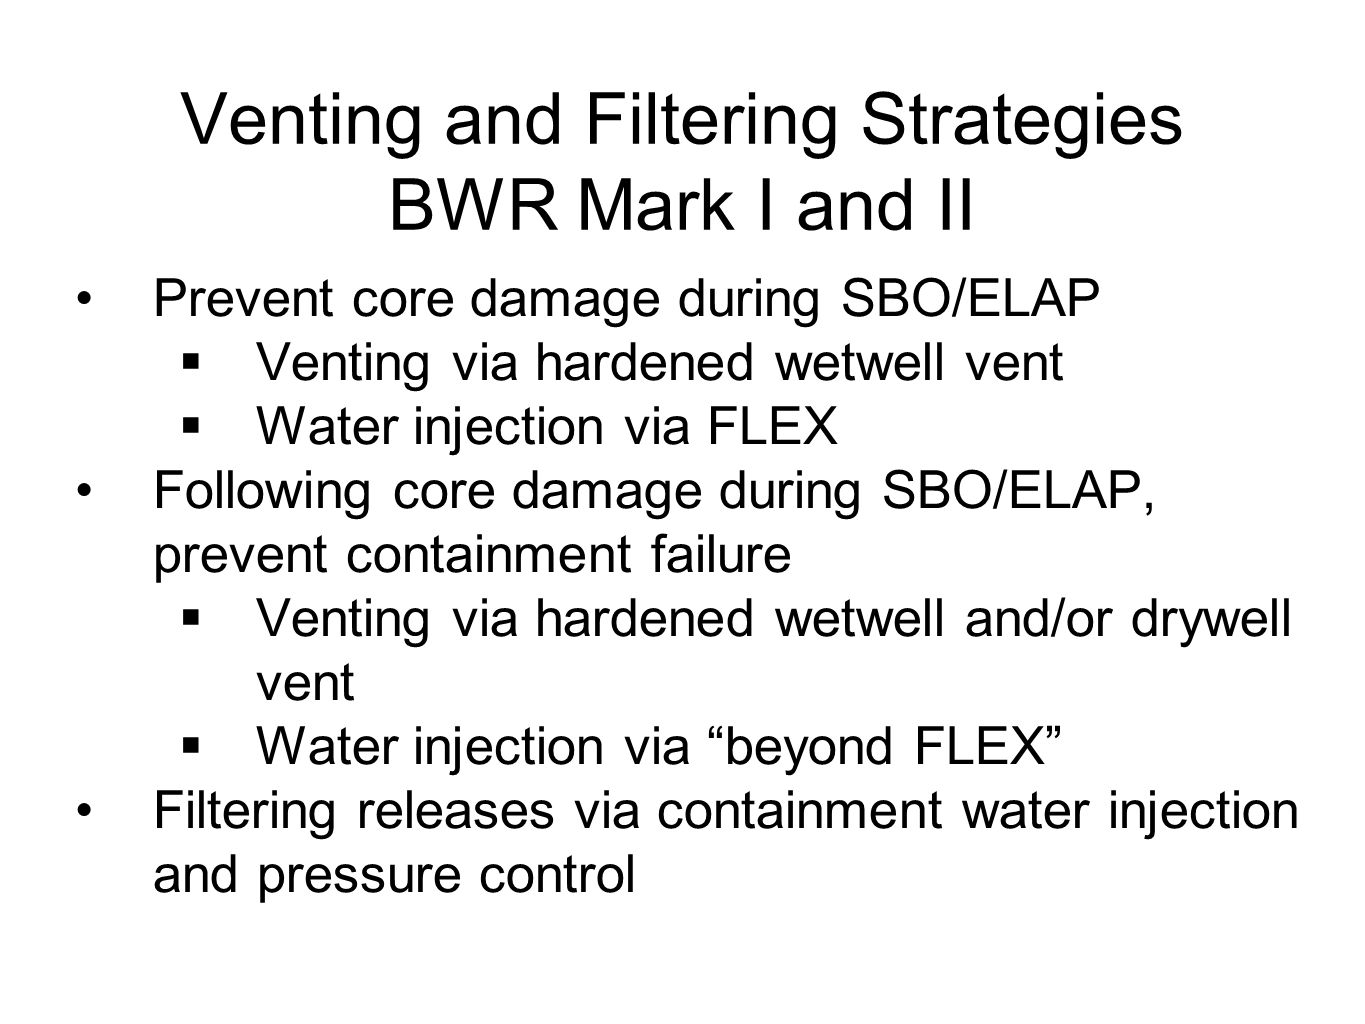 Venting and Filtering Strategies BWR Mark I and II